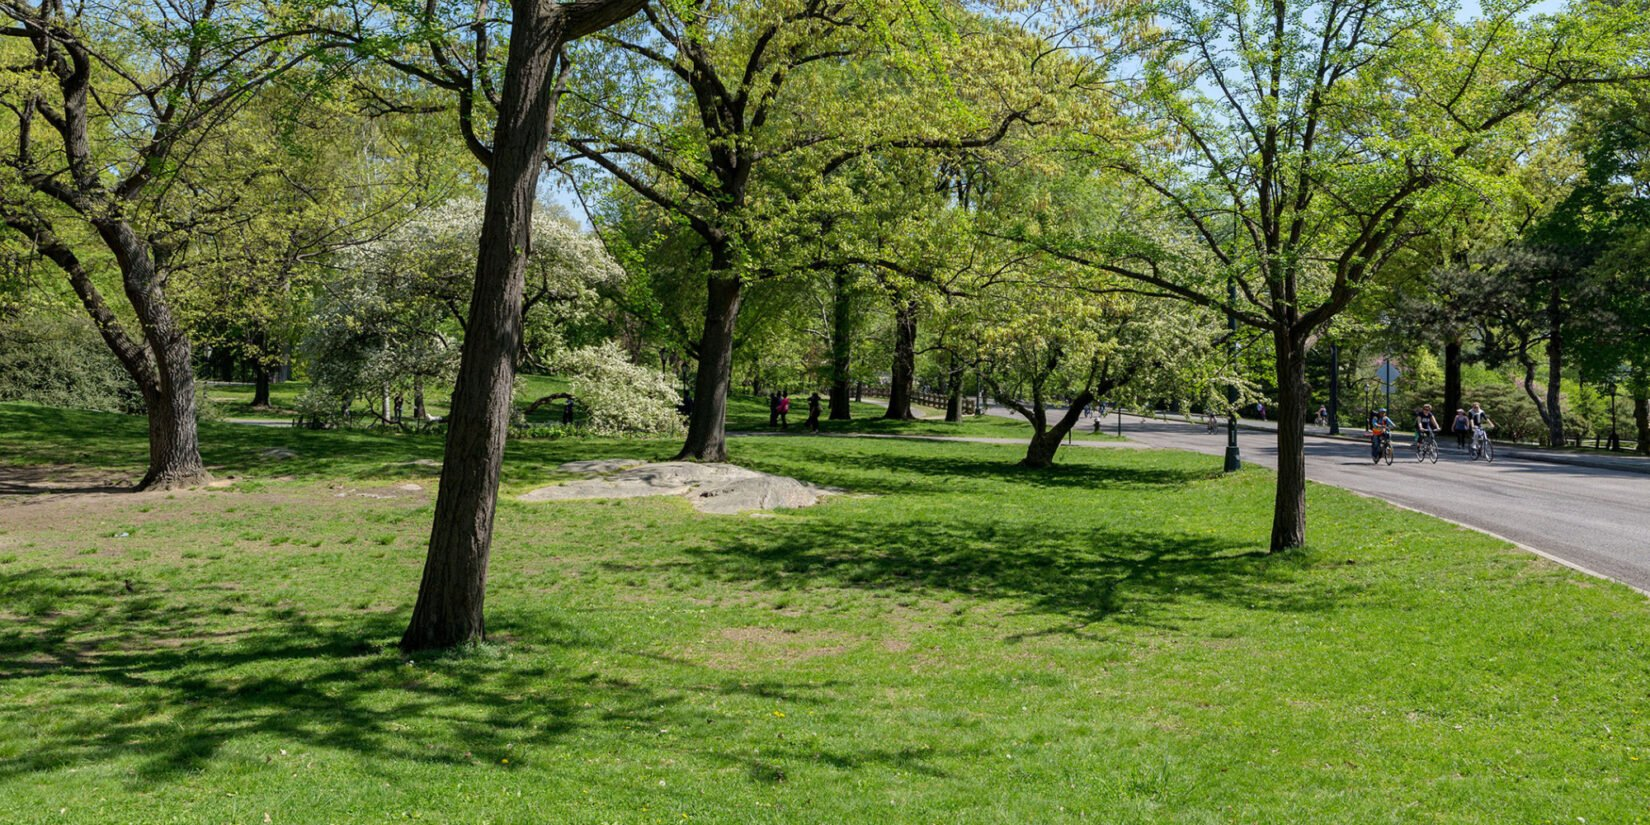 A section of the Seneca Village site, with slender trees widely spaced under a spring sky